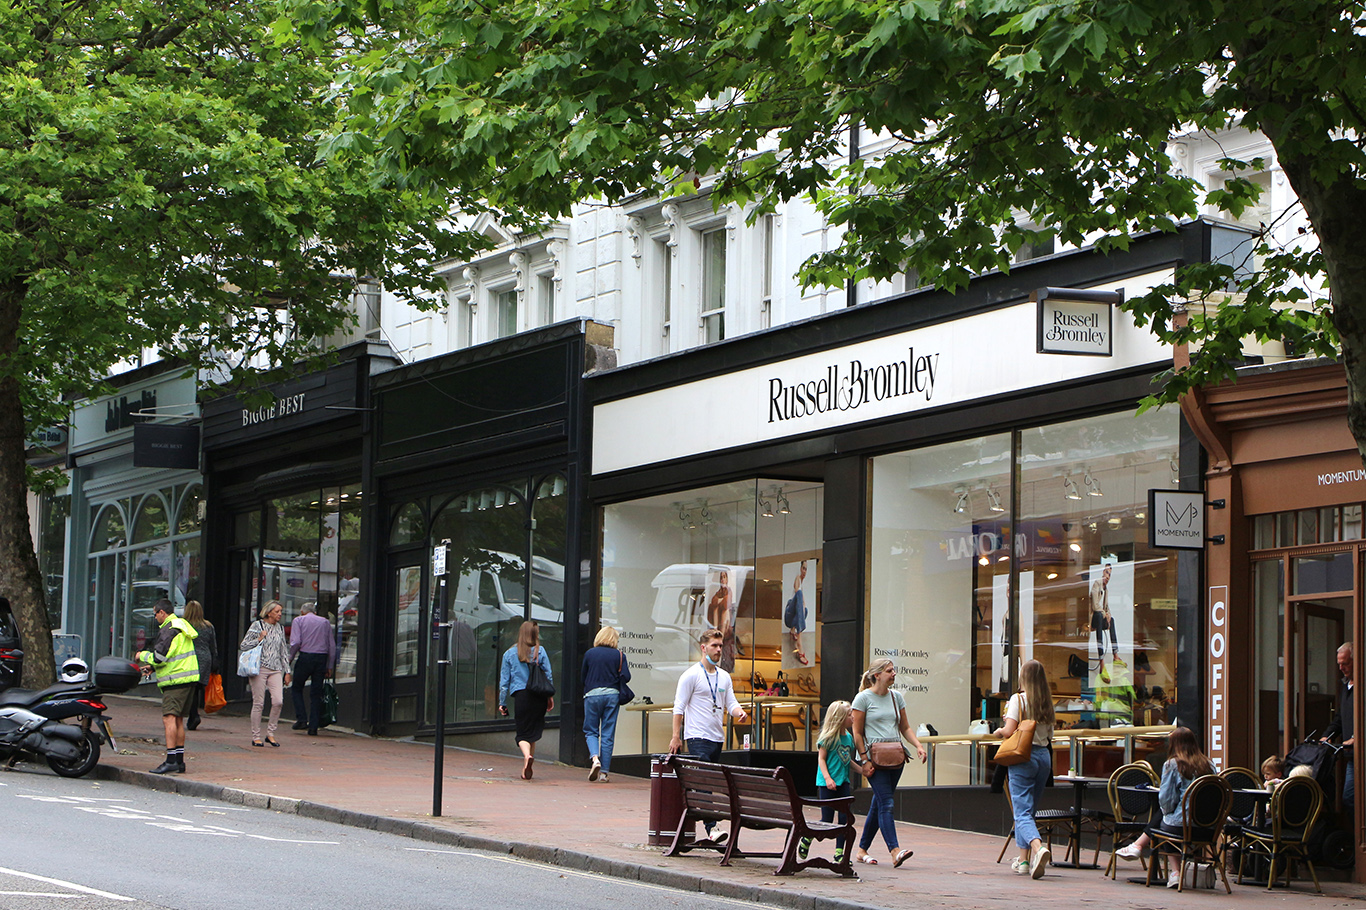 Russell and Bromley shoe shop, Royal Tunbridge Wells